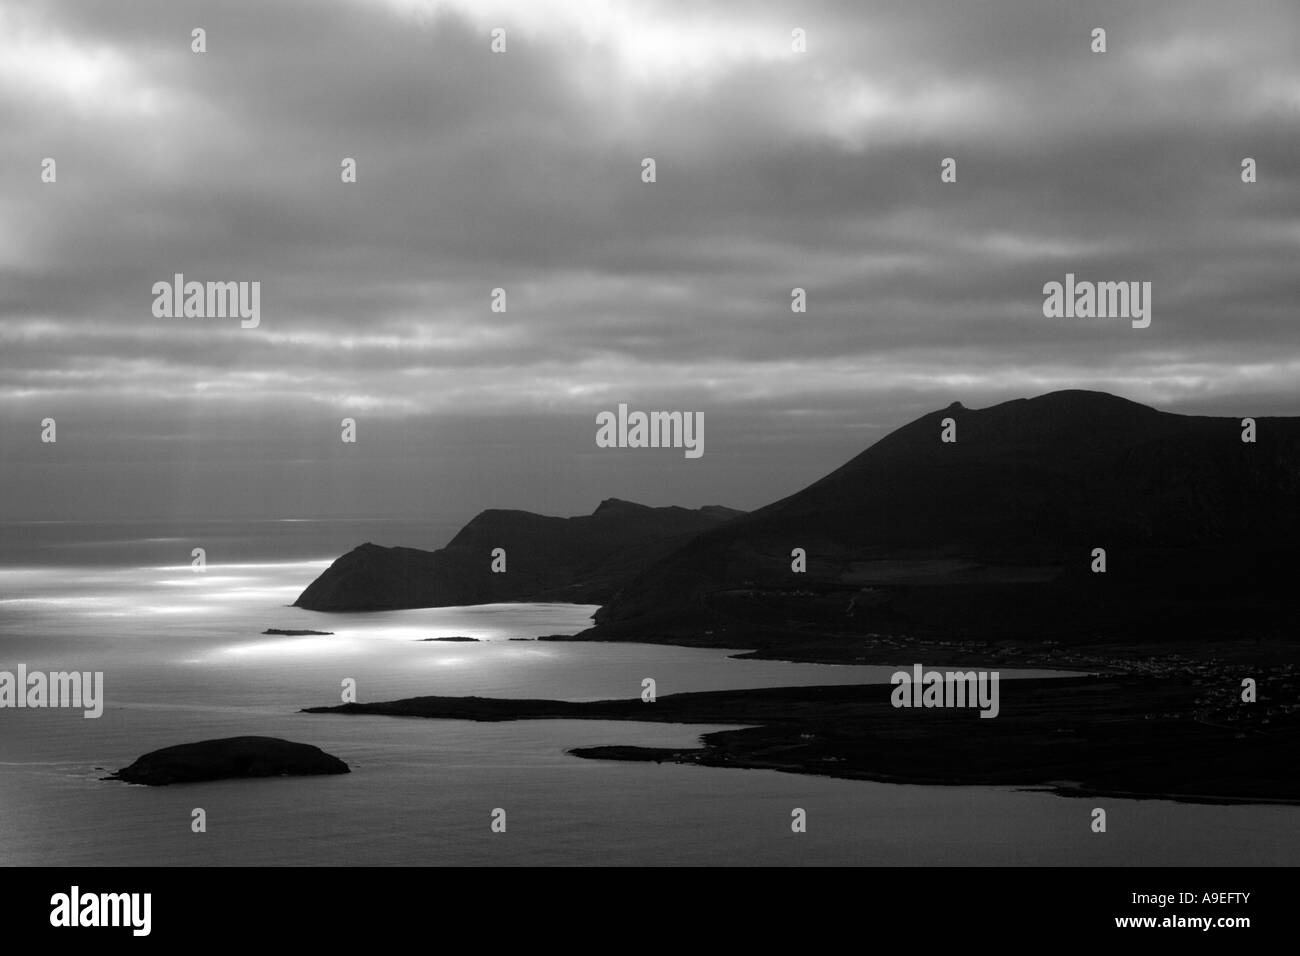 Silhouetted coastline of Achill Island, Ireland, lit by beams of light breaking through the clouds. - Stock Image